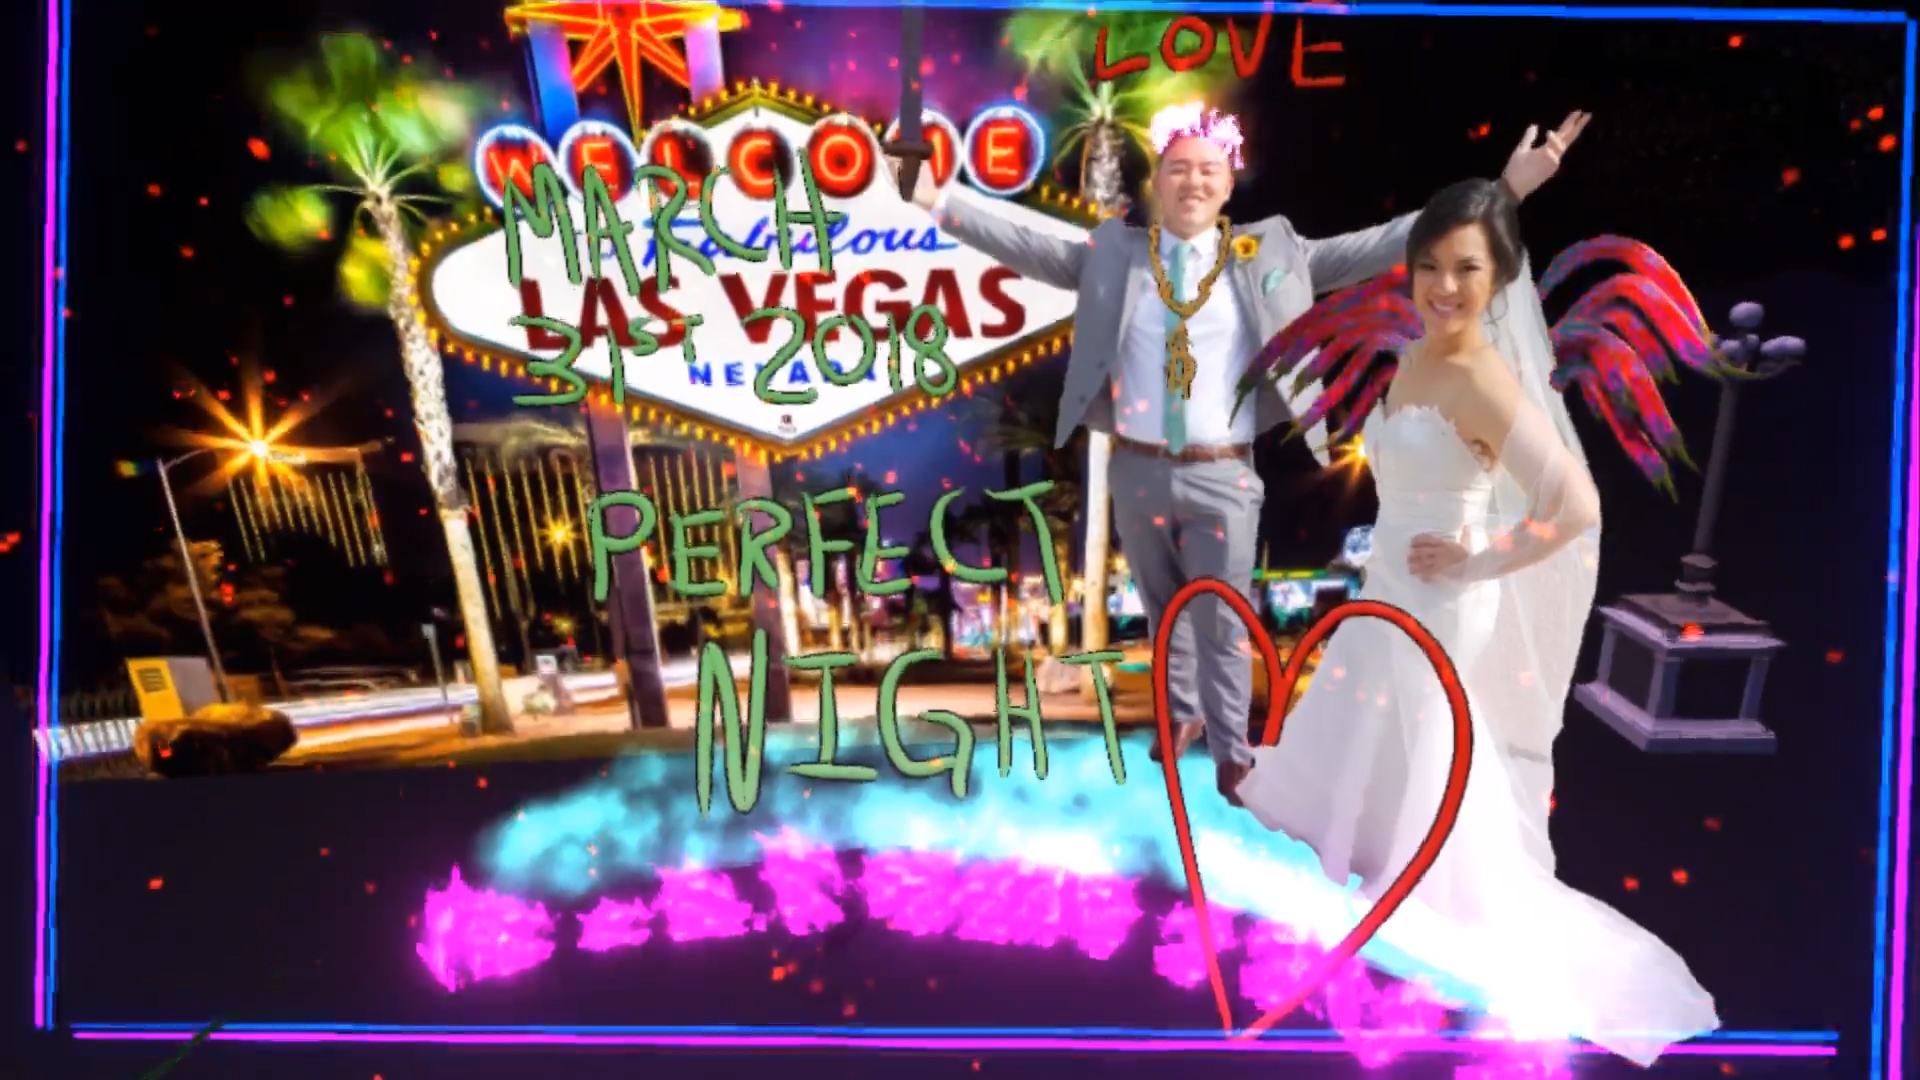 cover-photo-vegas-virtual-reality-guestbook.jpg